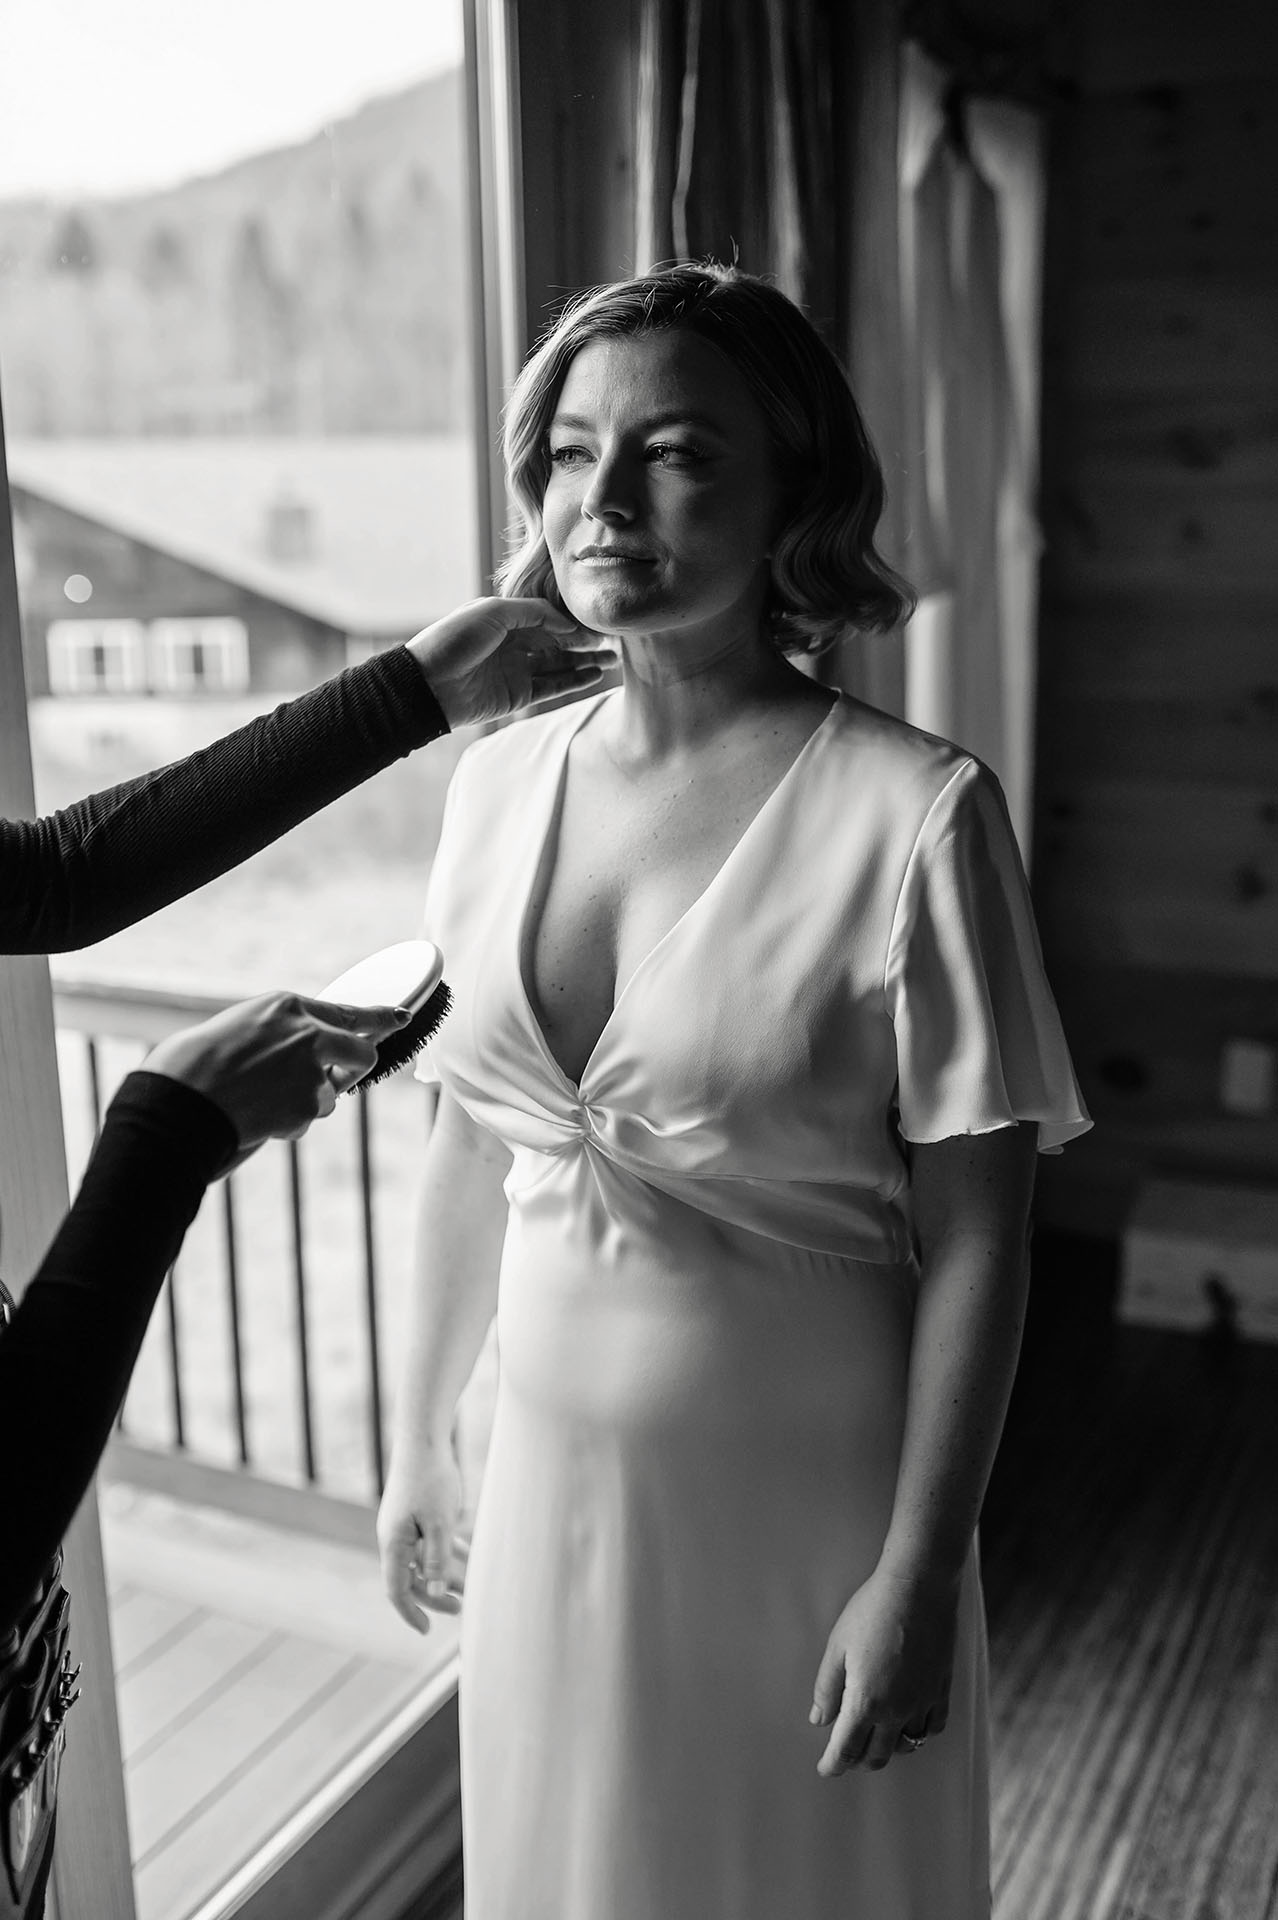 Catskills Wedding Photographers, New York | finishing touches from her makeup artist